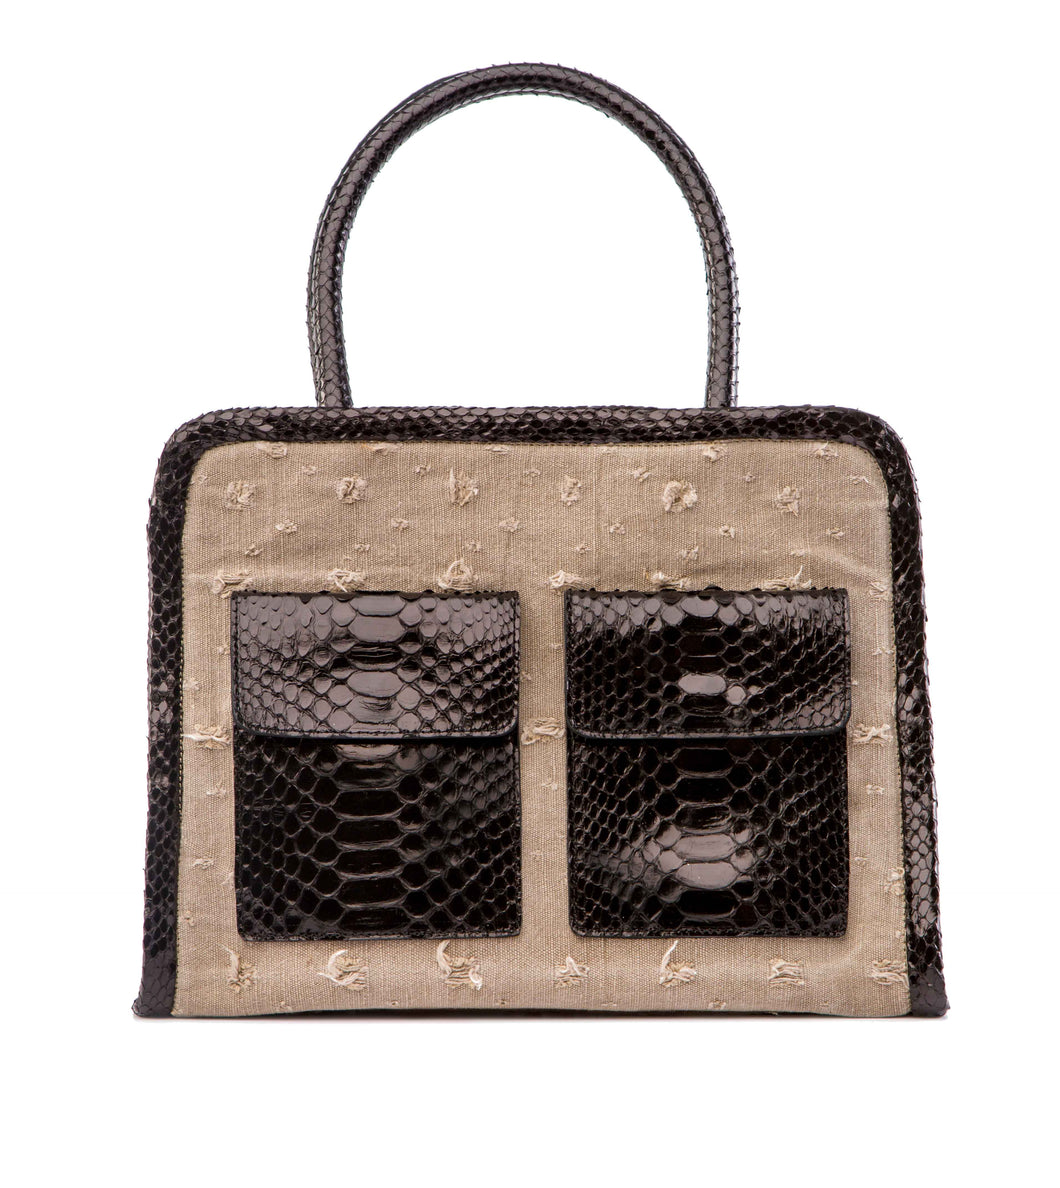 Phialebel | Mini Shopping bag beige and black python